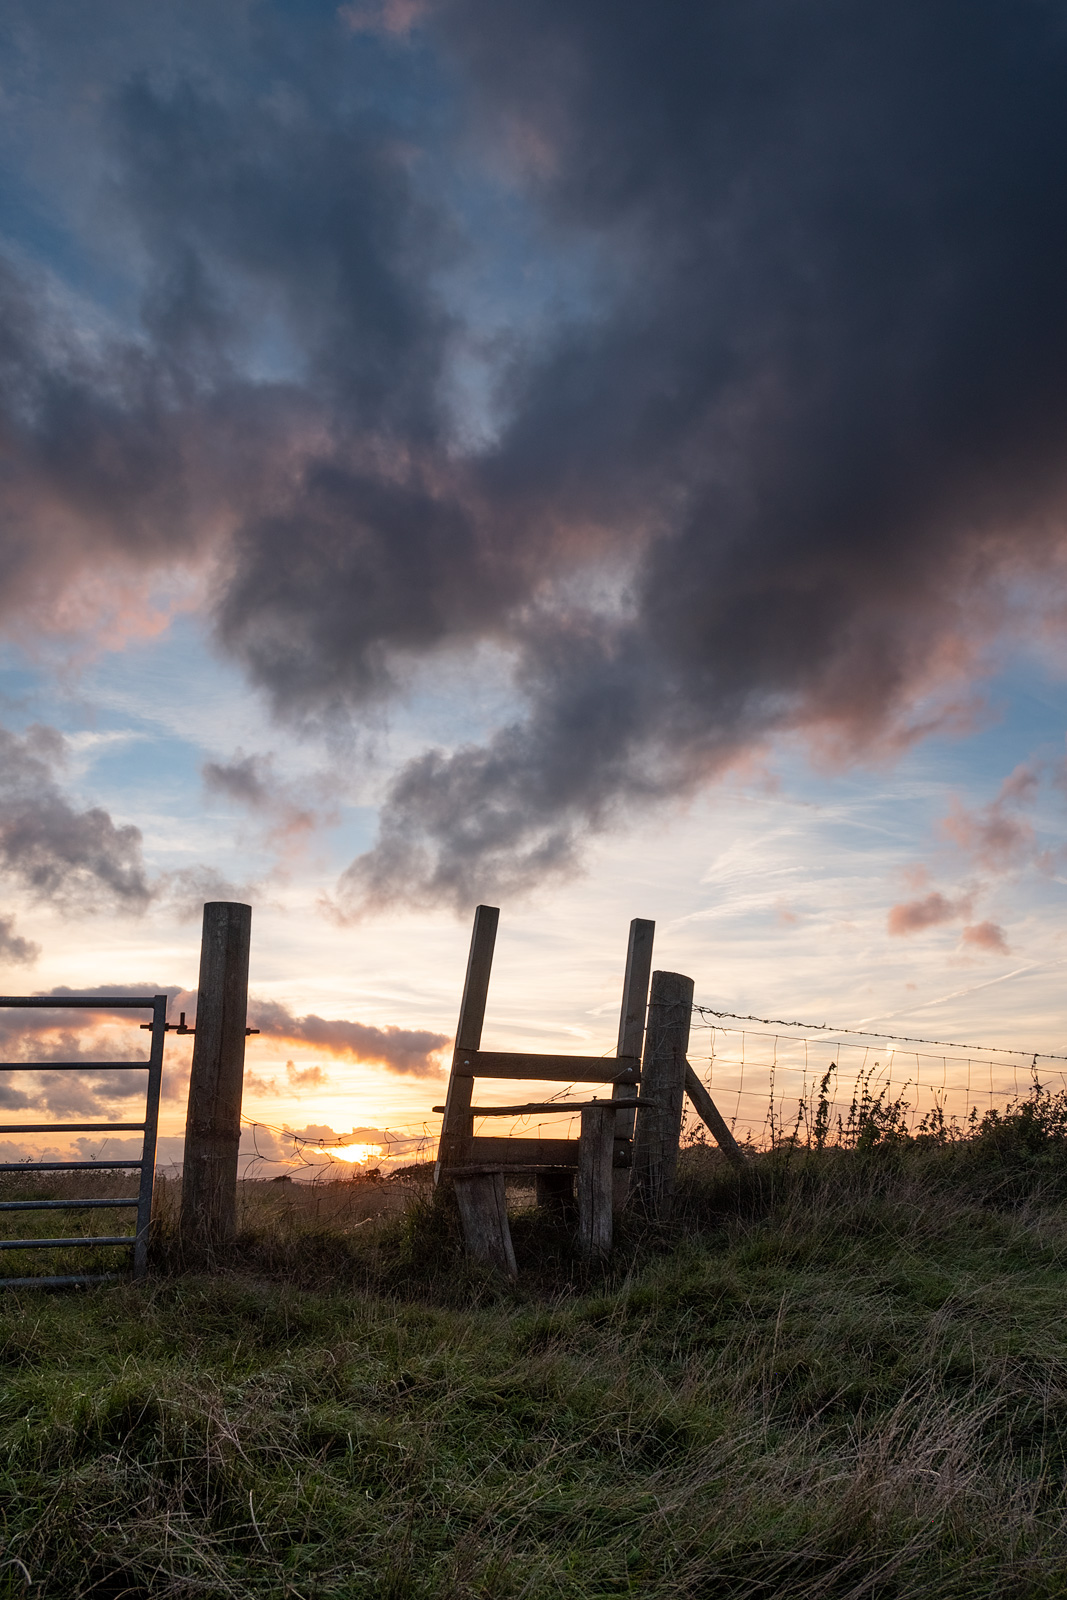 Sunset with crooked stile and farm gate in foreground with dramatic colourful clouds Mill Lane Poynings West Sussex UK colour nature photograph portrait ©P. Maton 2018 eyeteeth.net